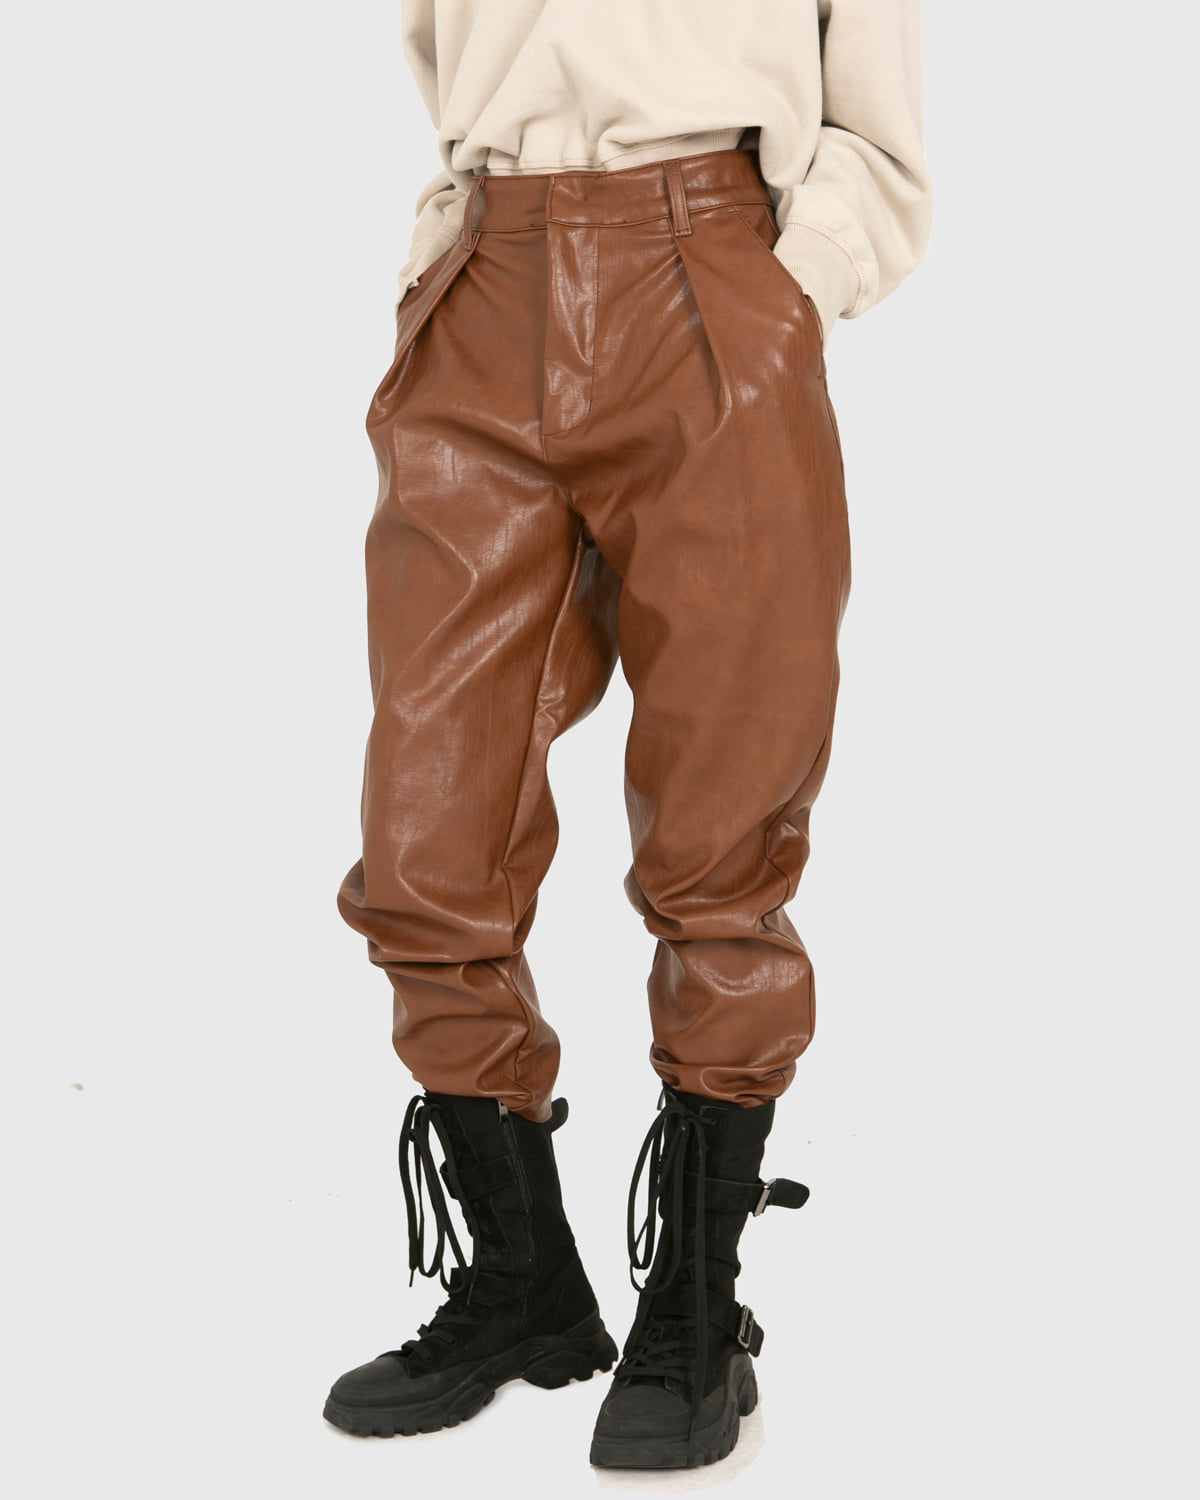 raucohouse-FAUX PINTUCK LEATHER PANTS - RAUCO HOUSE♡韓國男裝褲子